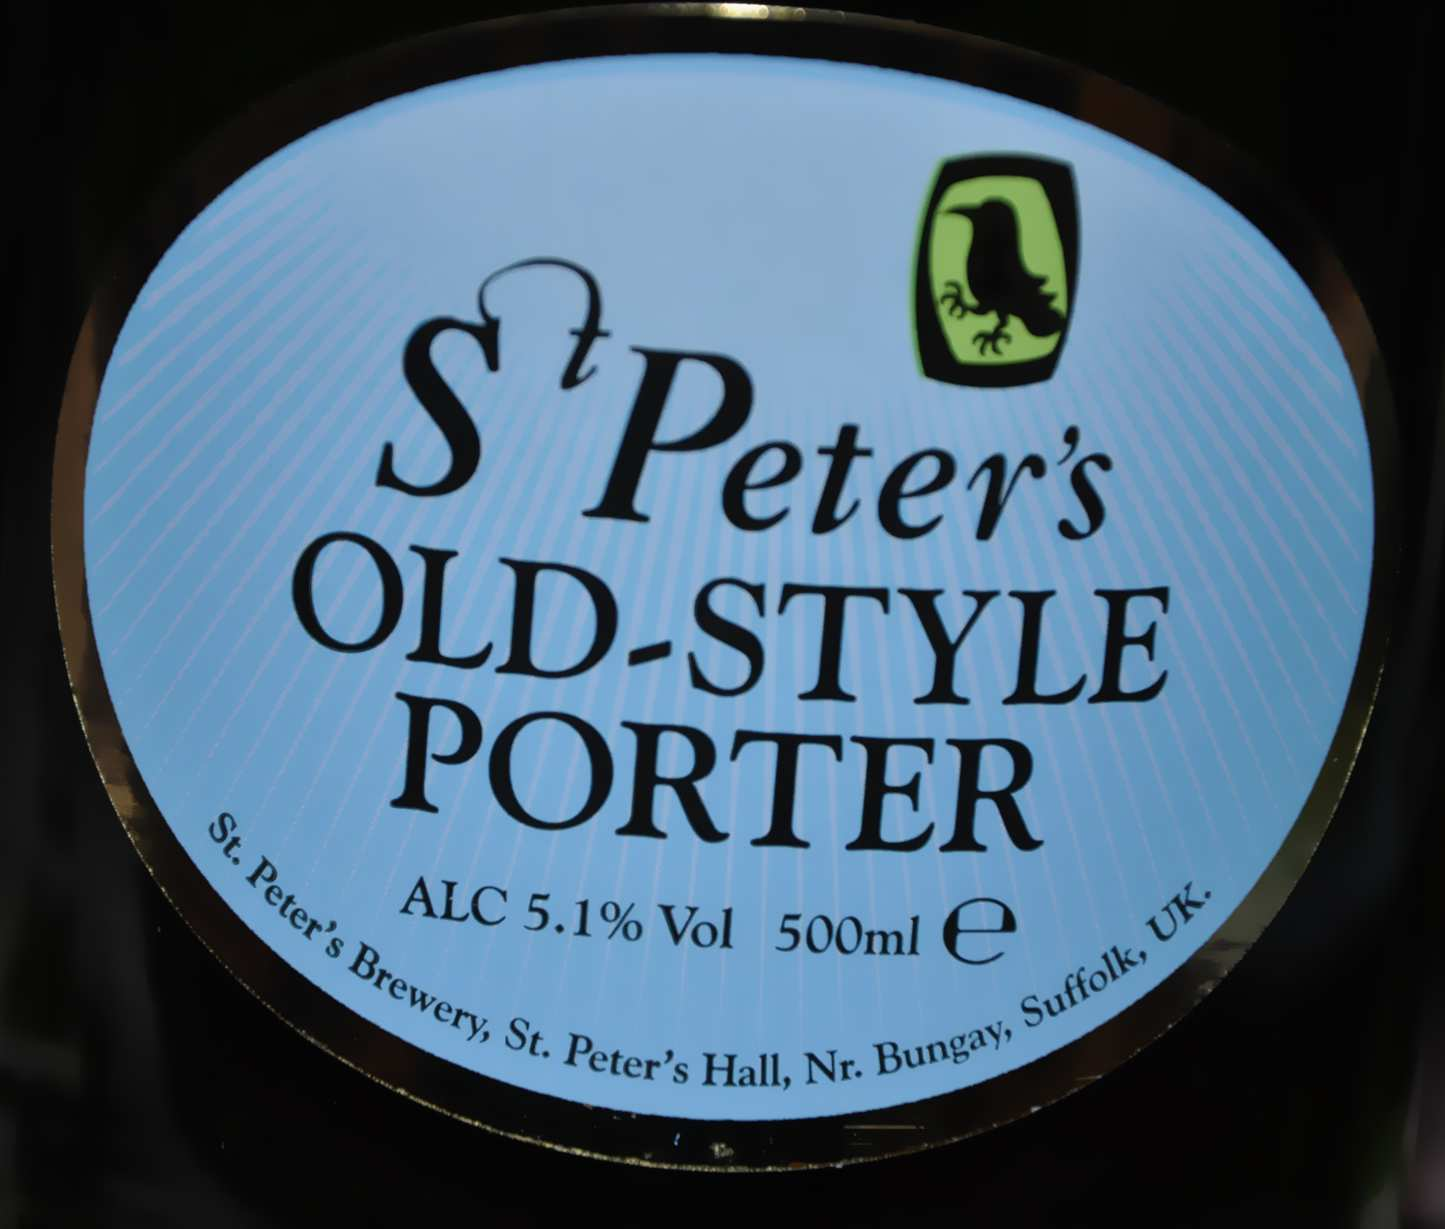 StPeters_OldStylePorter_Label